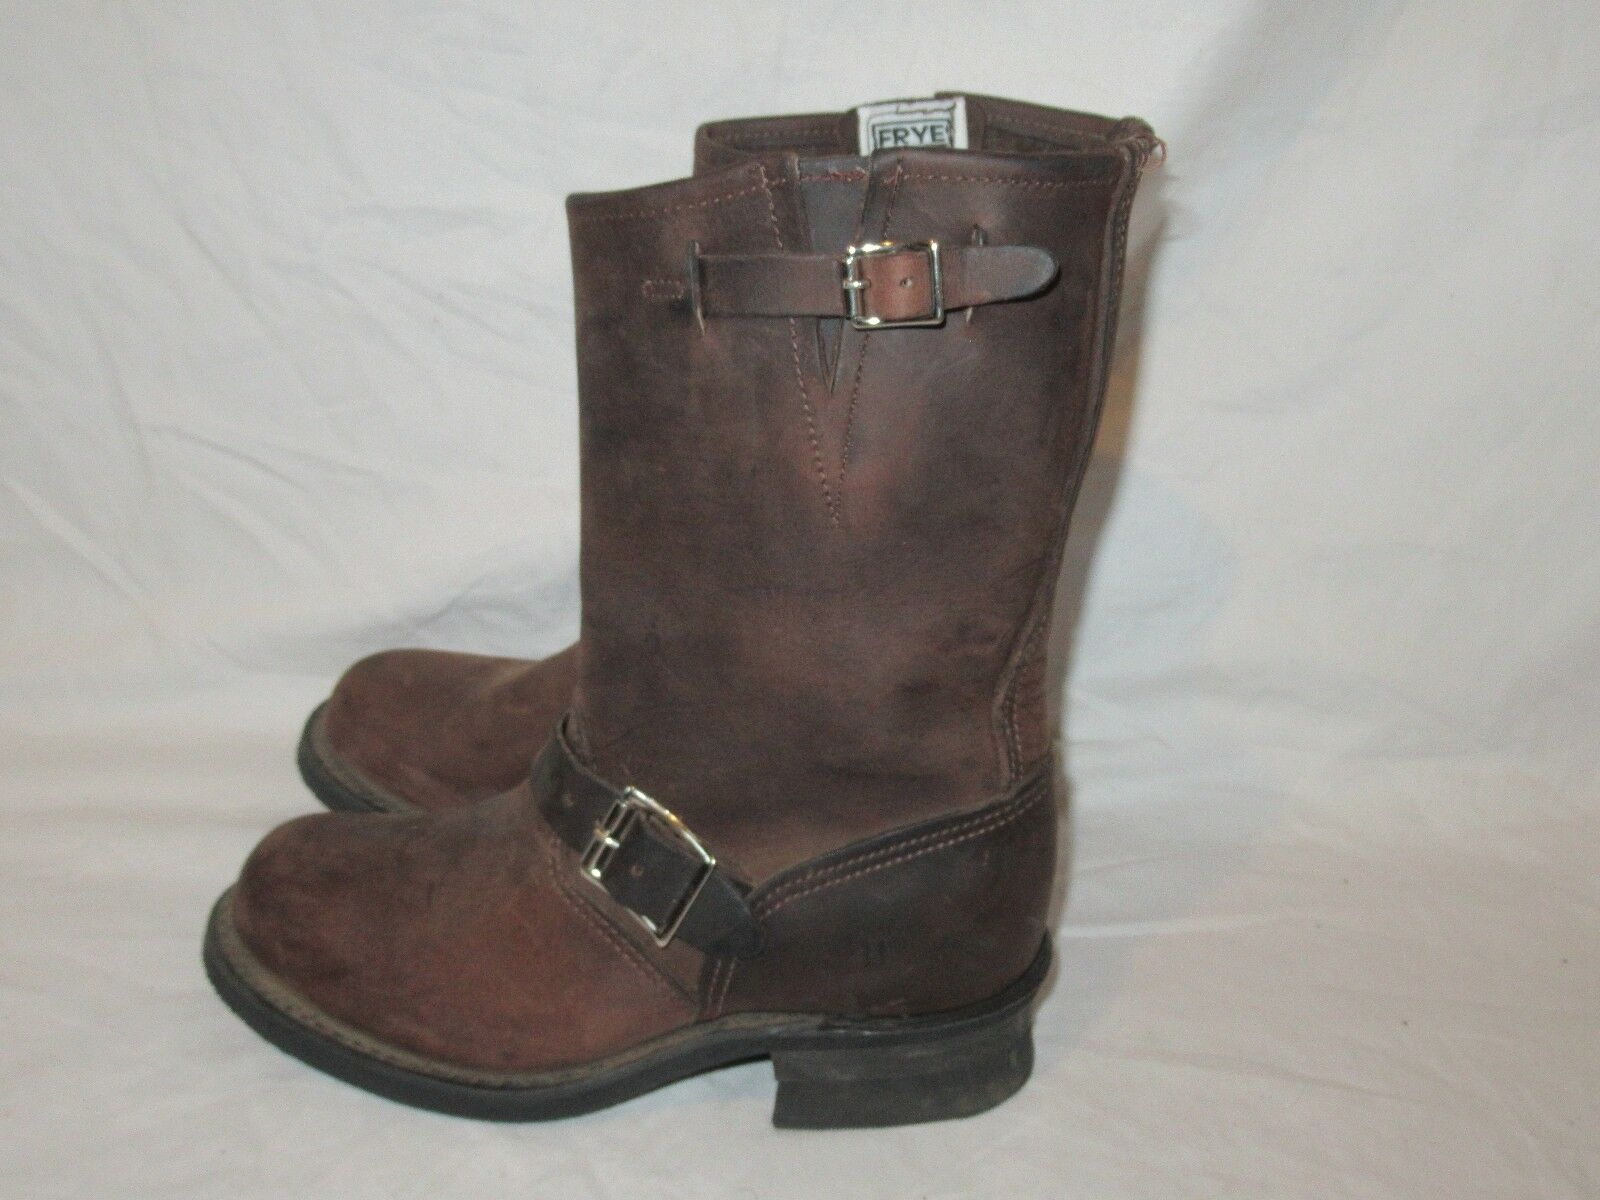 Frye Women's Engineer 12r, Brown Leather motorcycle Boots style style style  77400, sz 6.5 cd605a